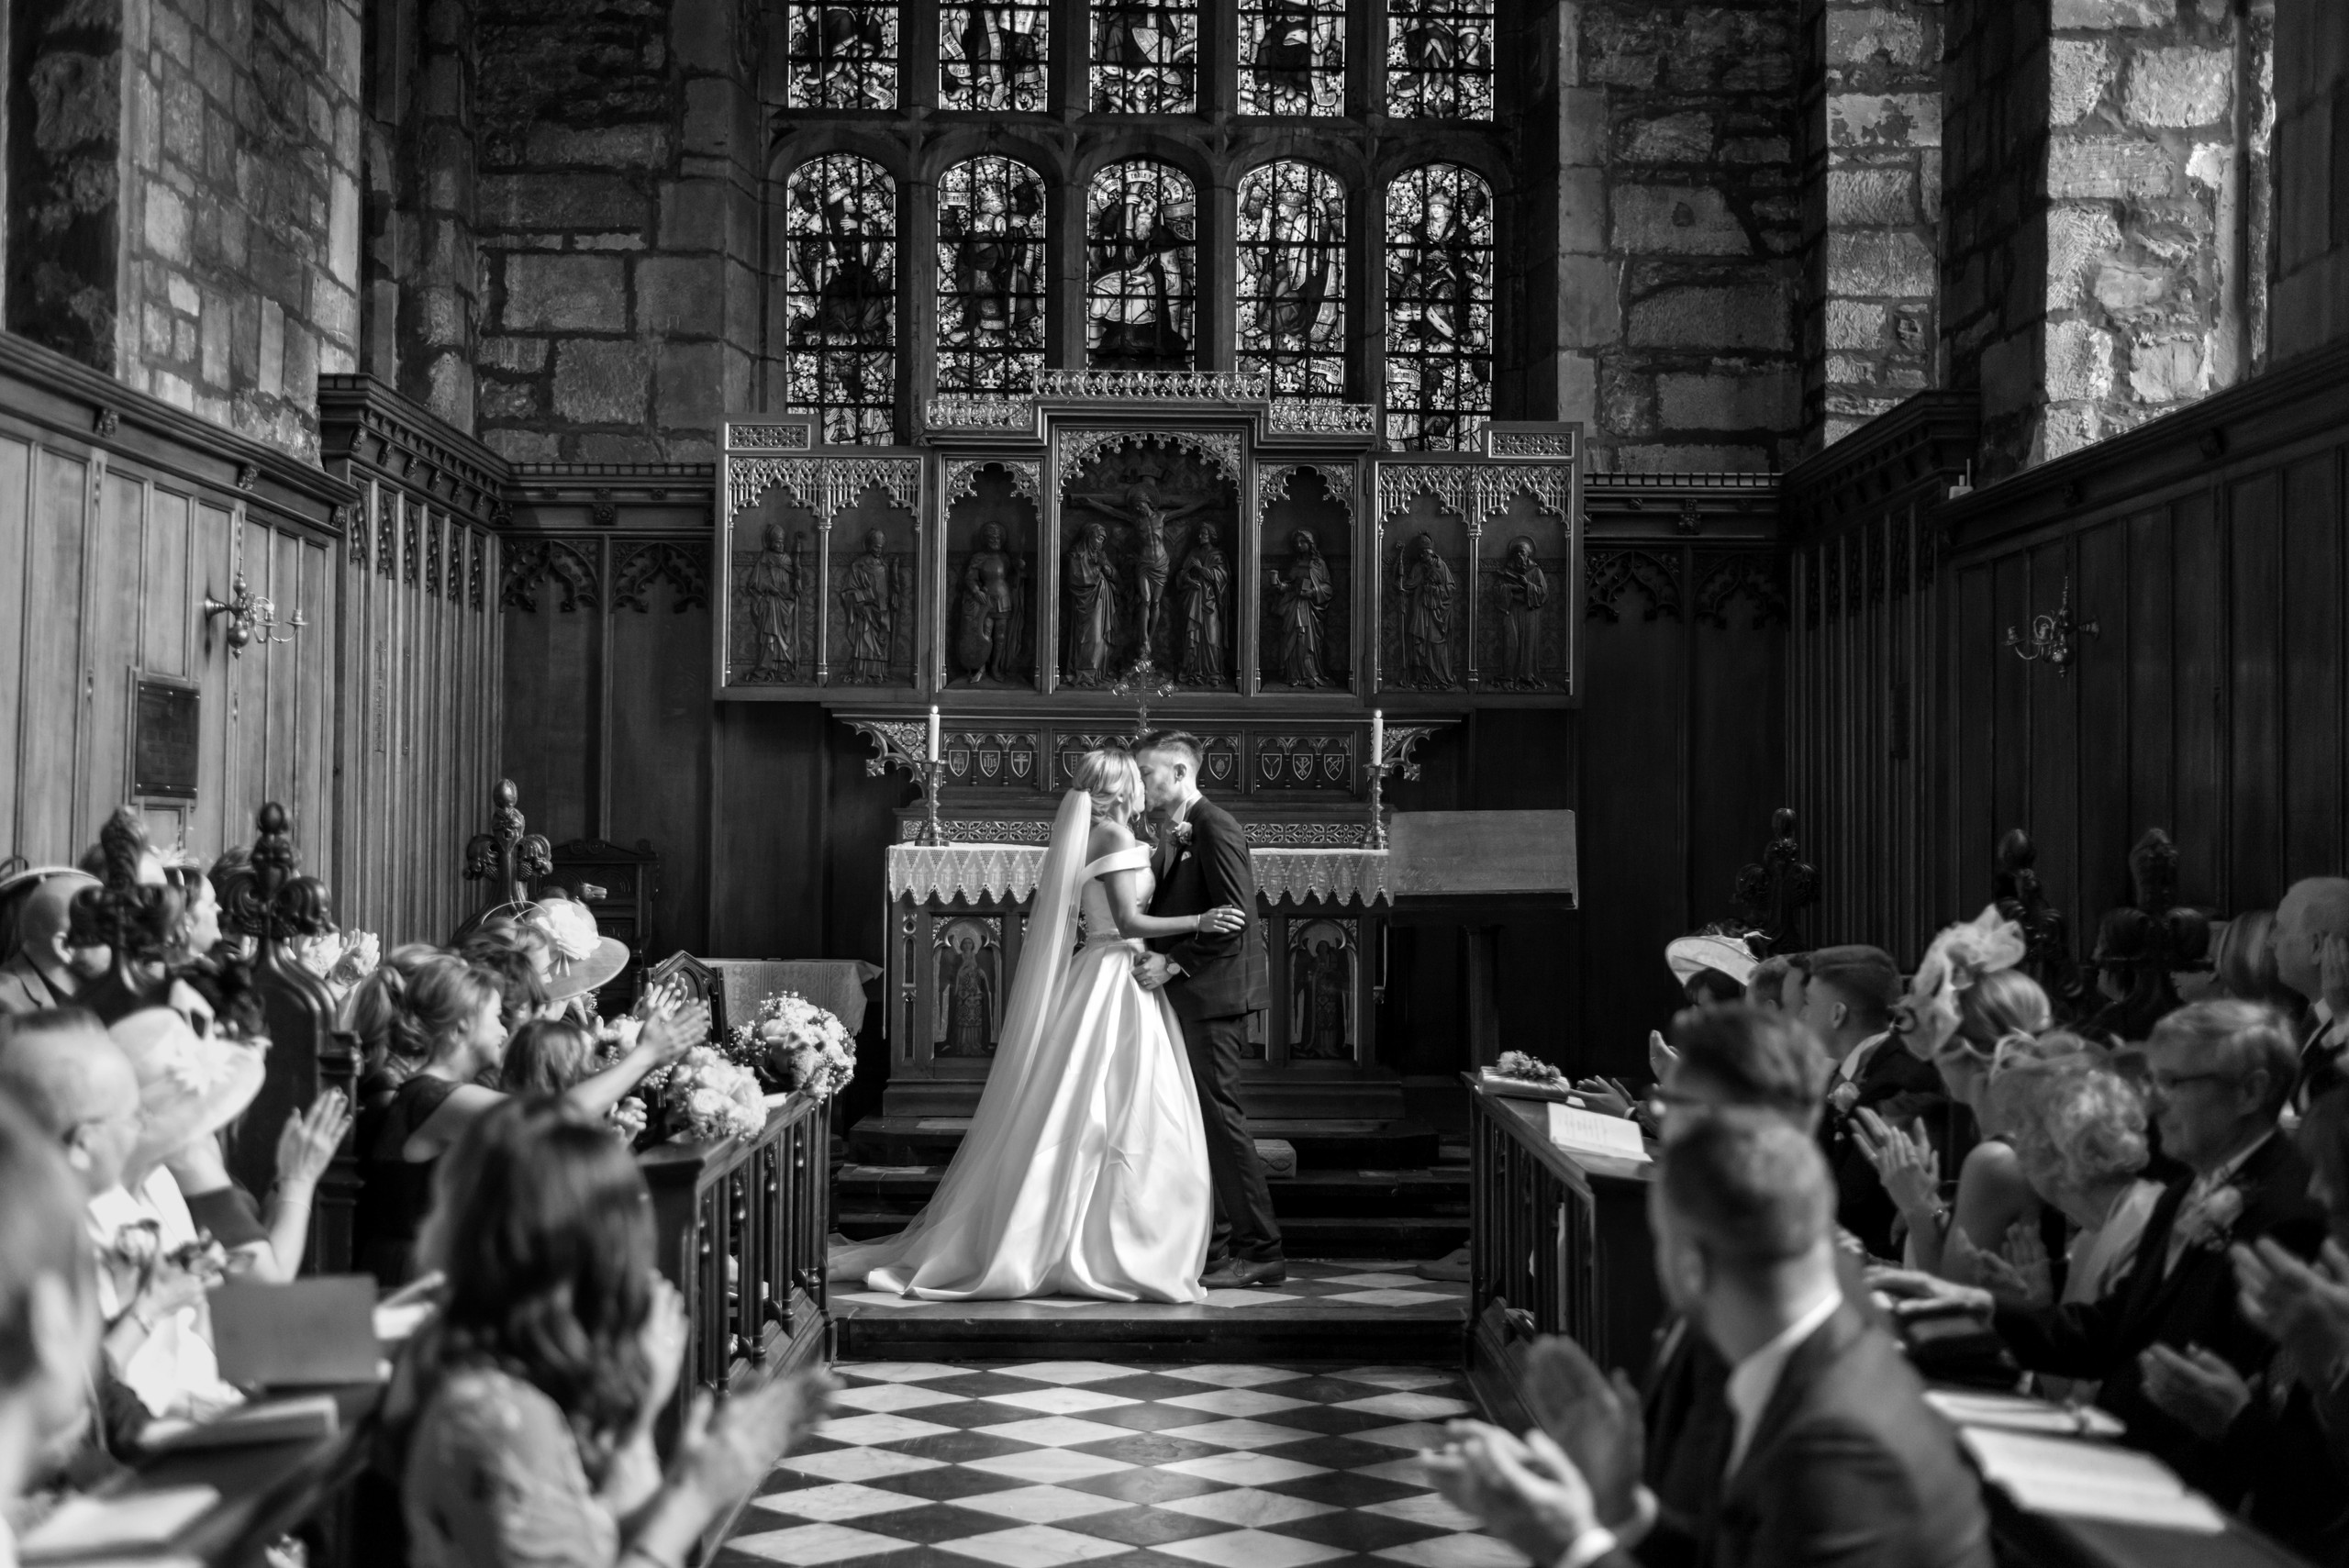 Black and white monochrome photograph of first kiss of bride and groom at the altar of Tunstall Chapel of Durham Castle on day of wedding ceremony